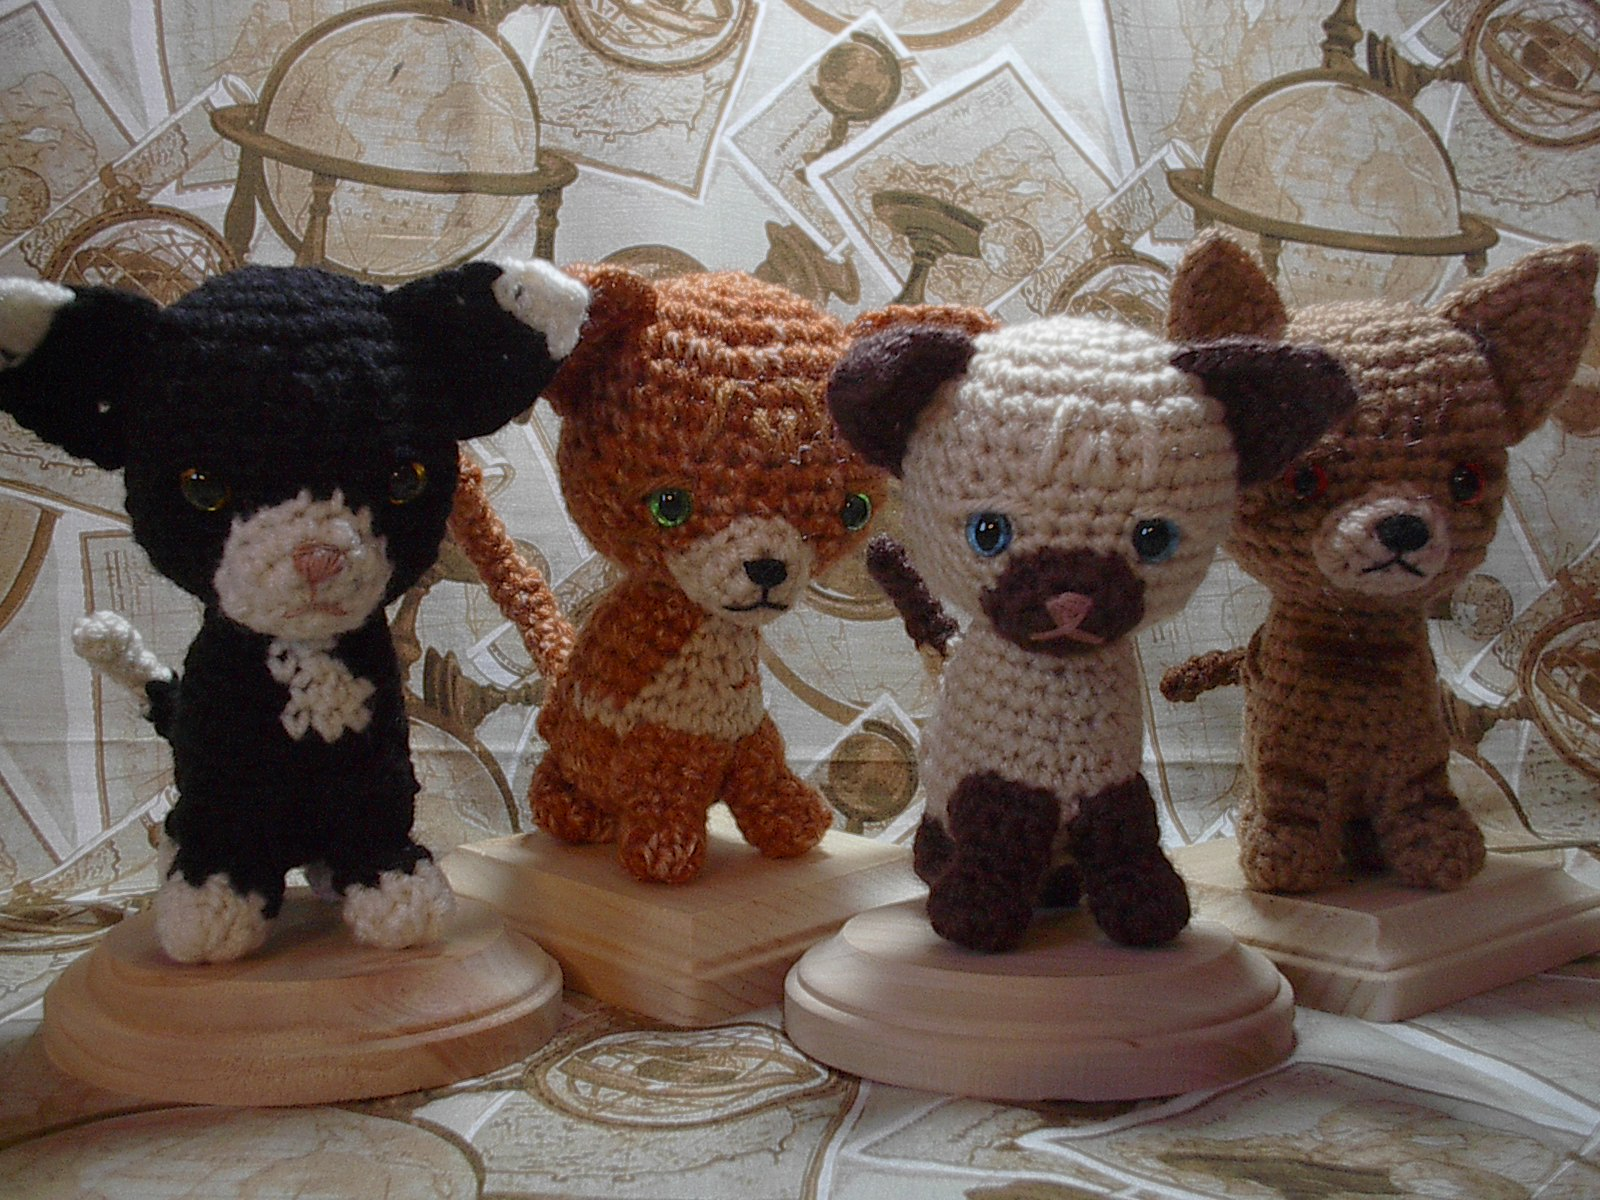 Free Crochet Patterns Cat : 2000 Free Amigurumi Patterns: Cute Kittens